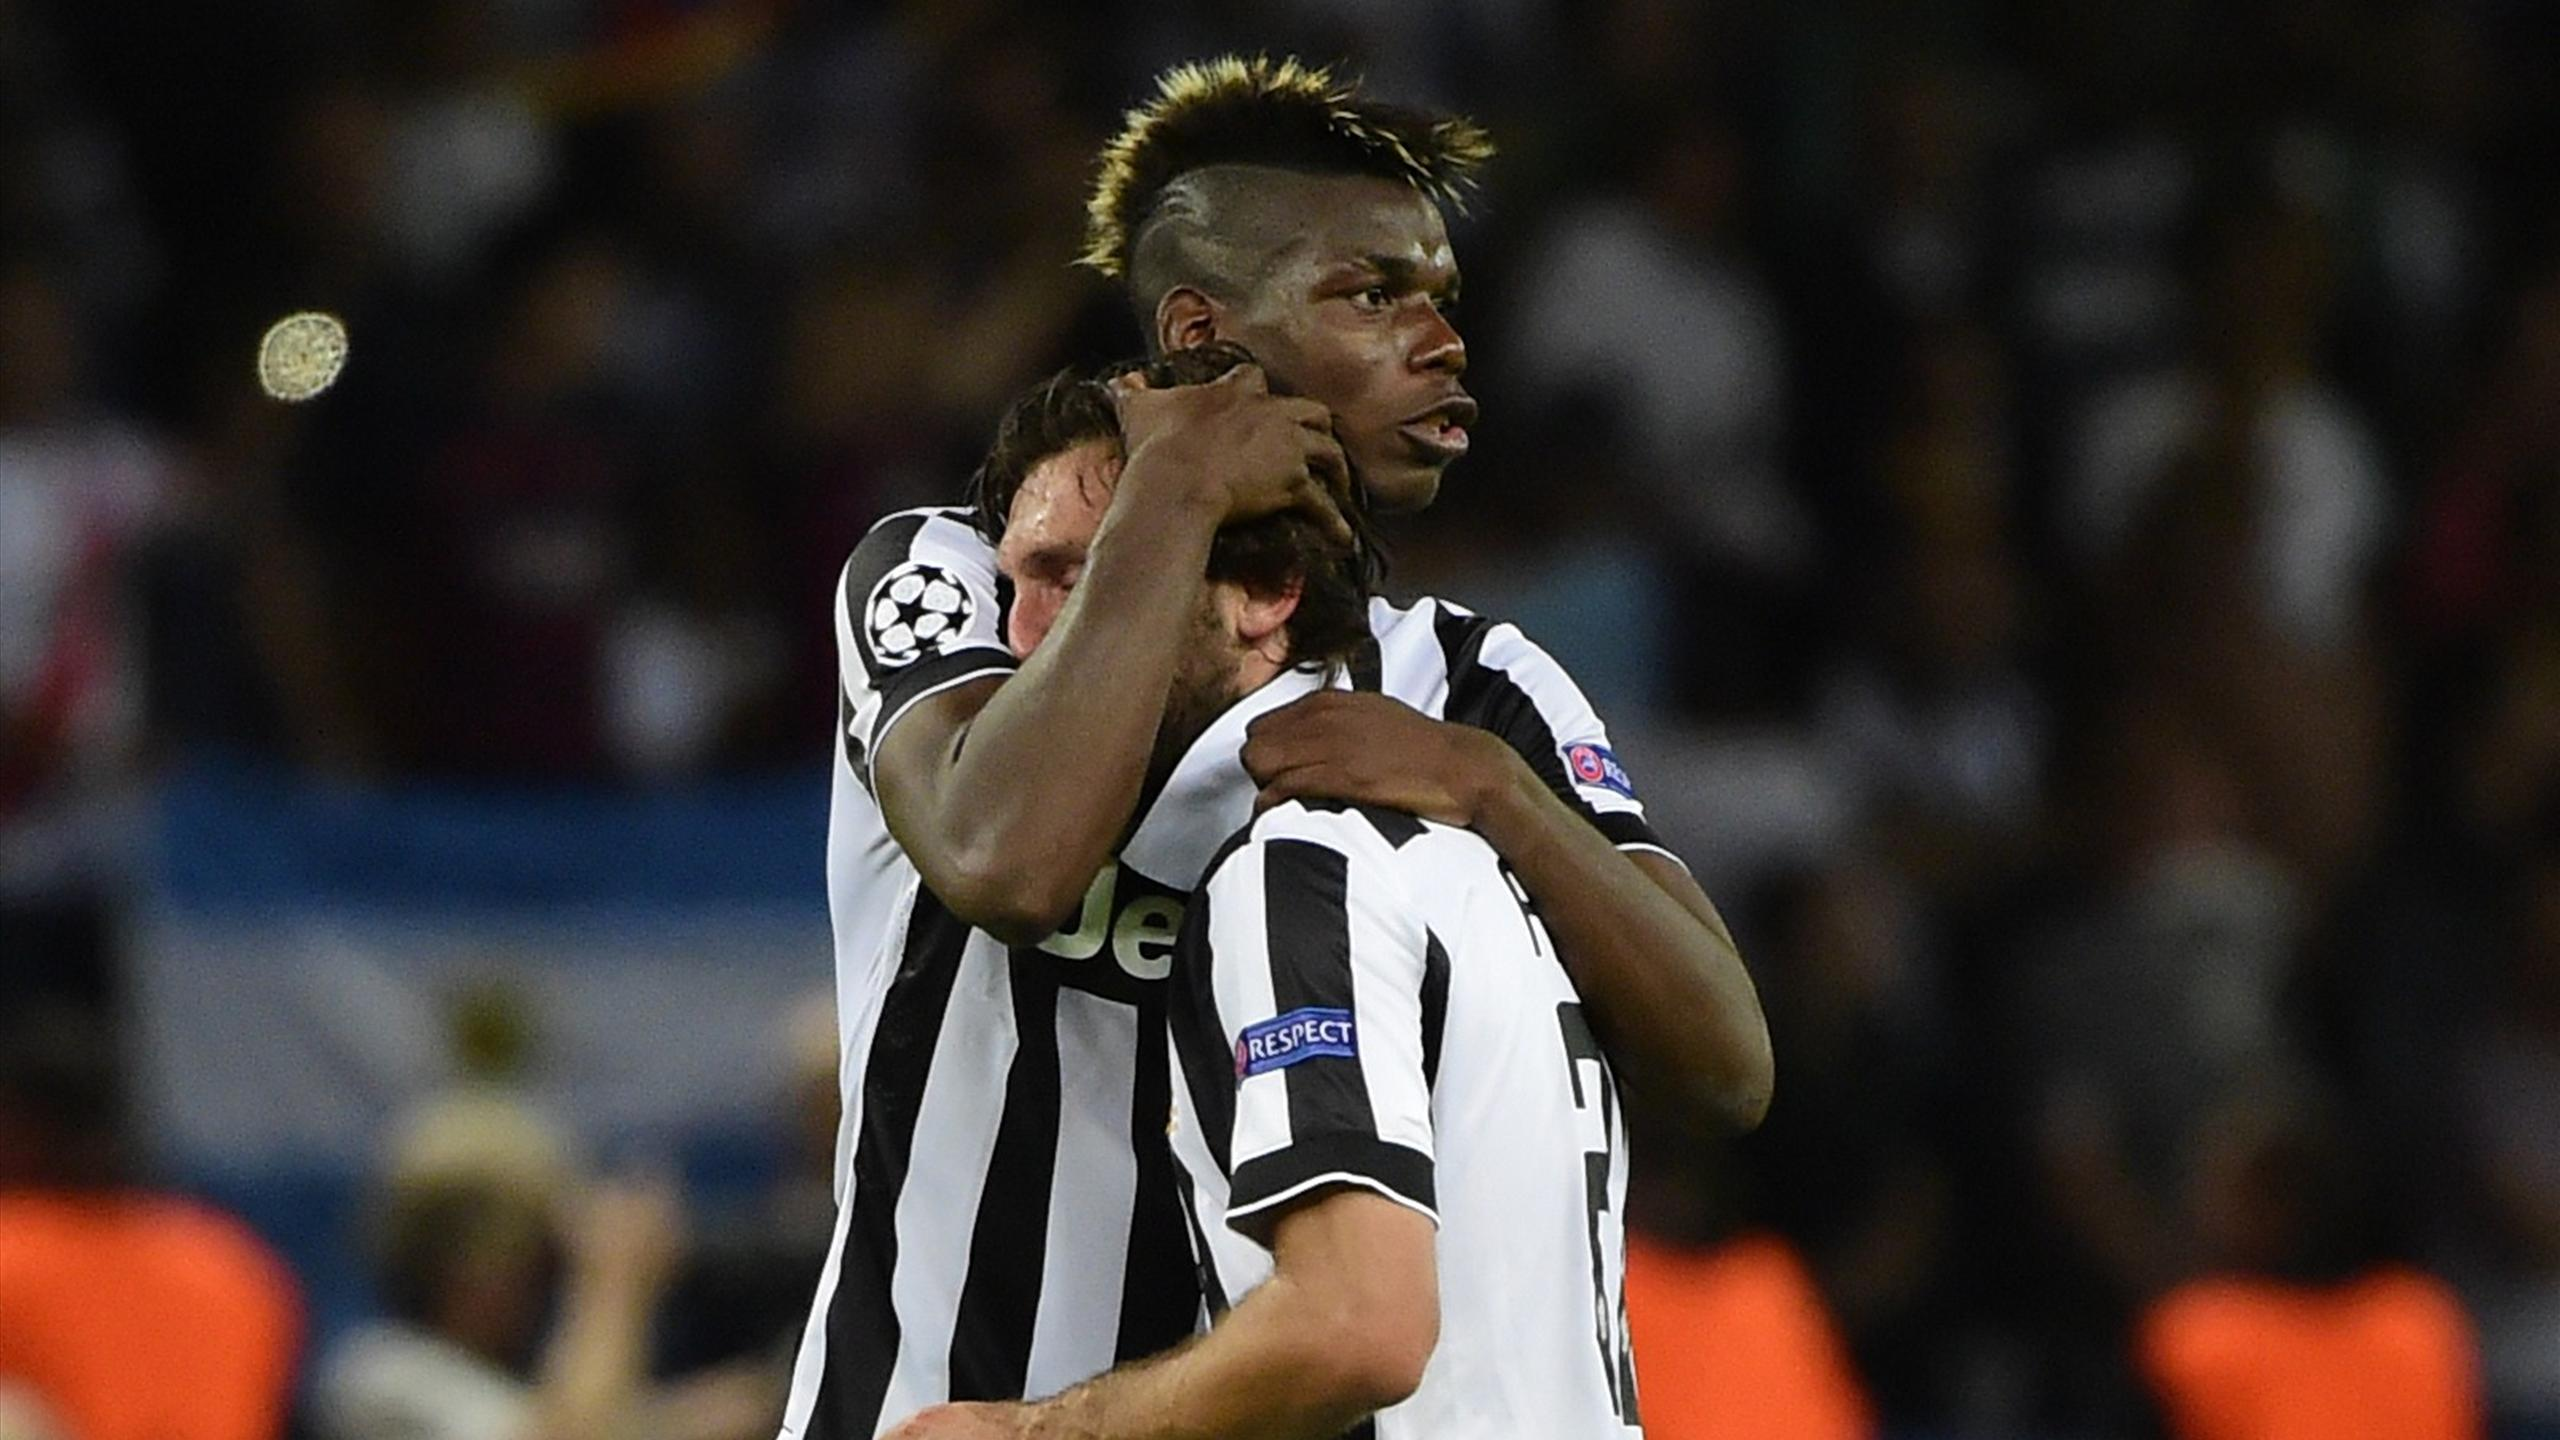 Paul Pogba and Andrea Pirlo console each other after Juventus lose to Barcelona